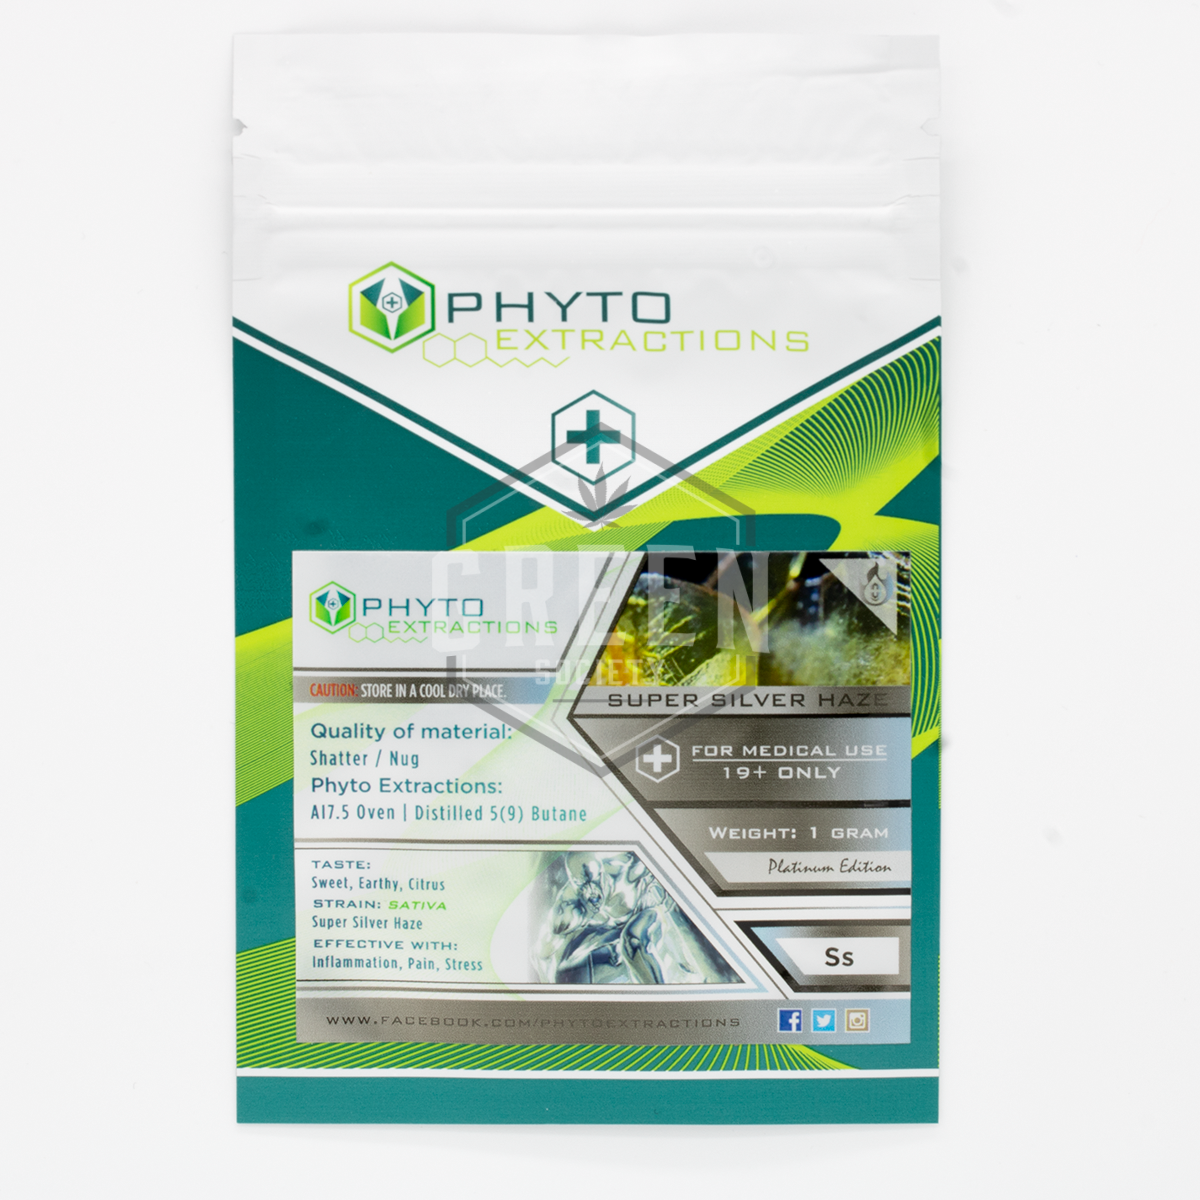 Super Silver Haze Shatter by Phyto Extractions by Green Society - Image © 2018 Green Society. All Rights Reserved.